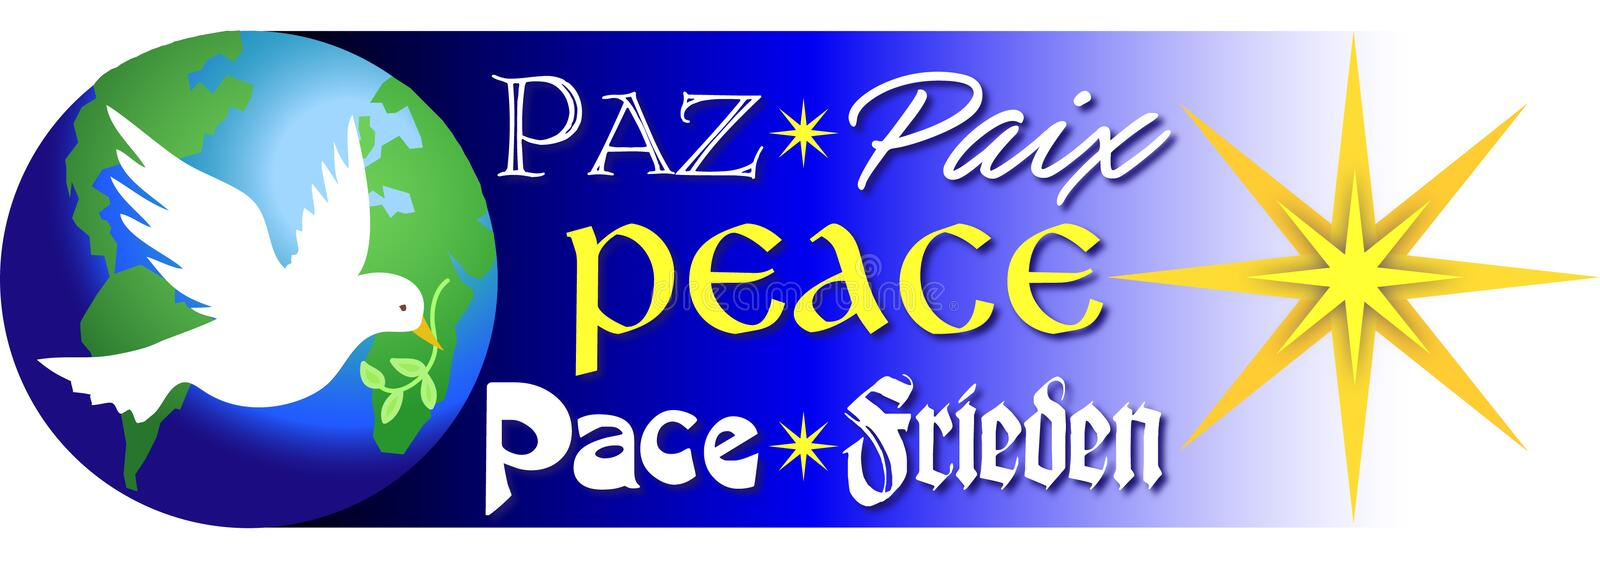 Words of Peace/eps royalty free illustration